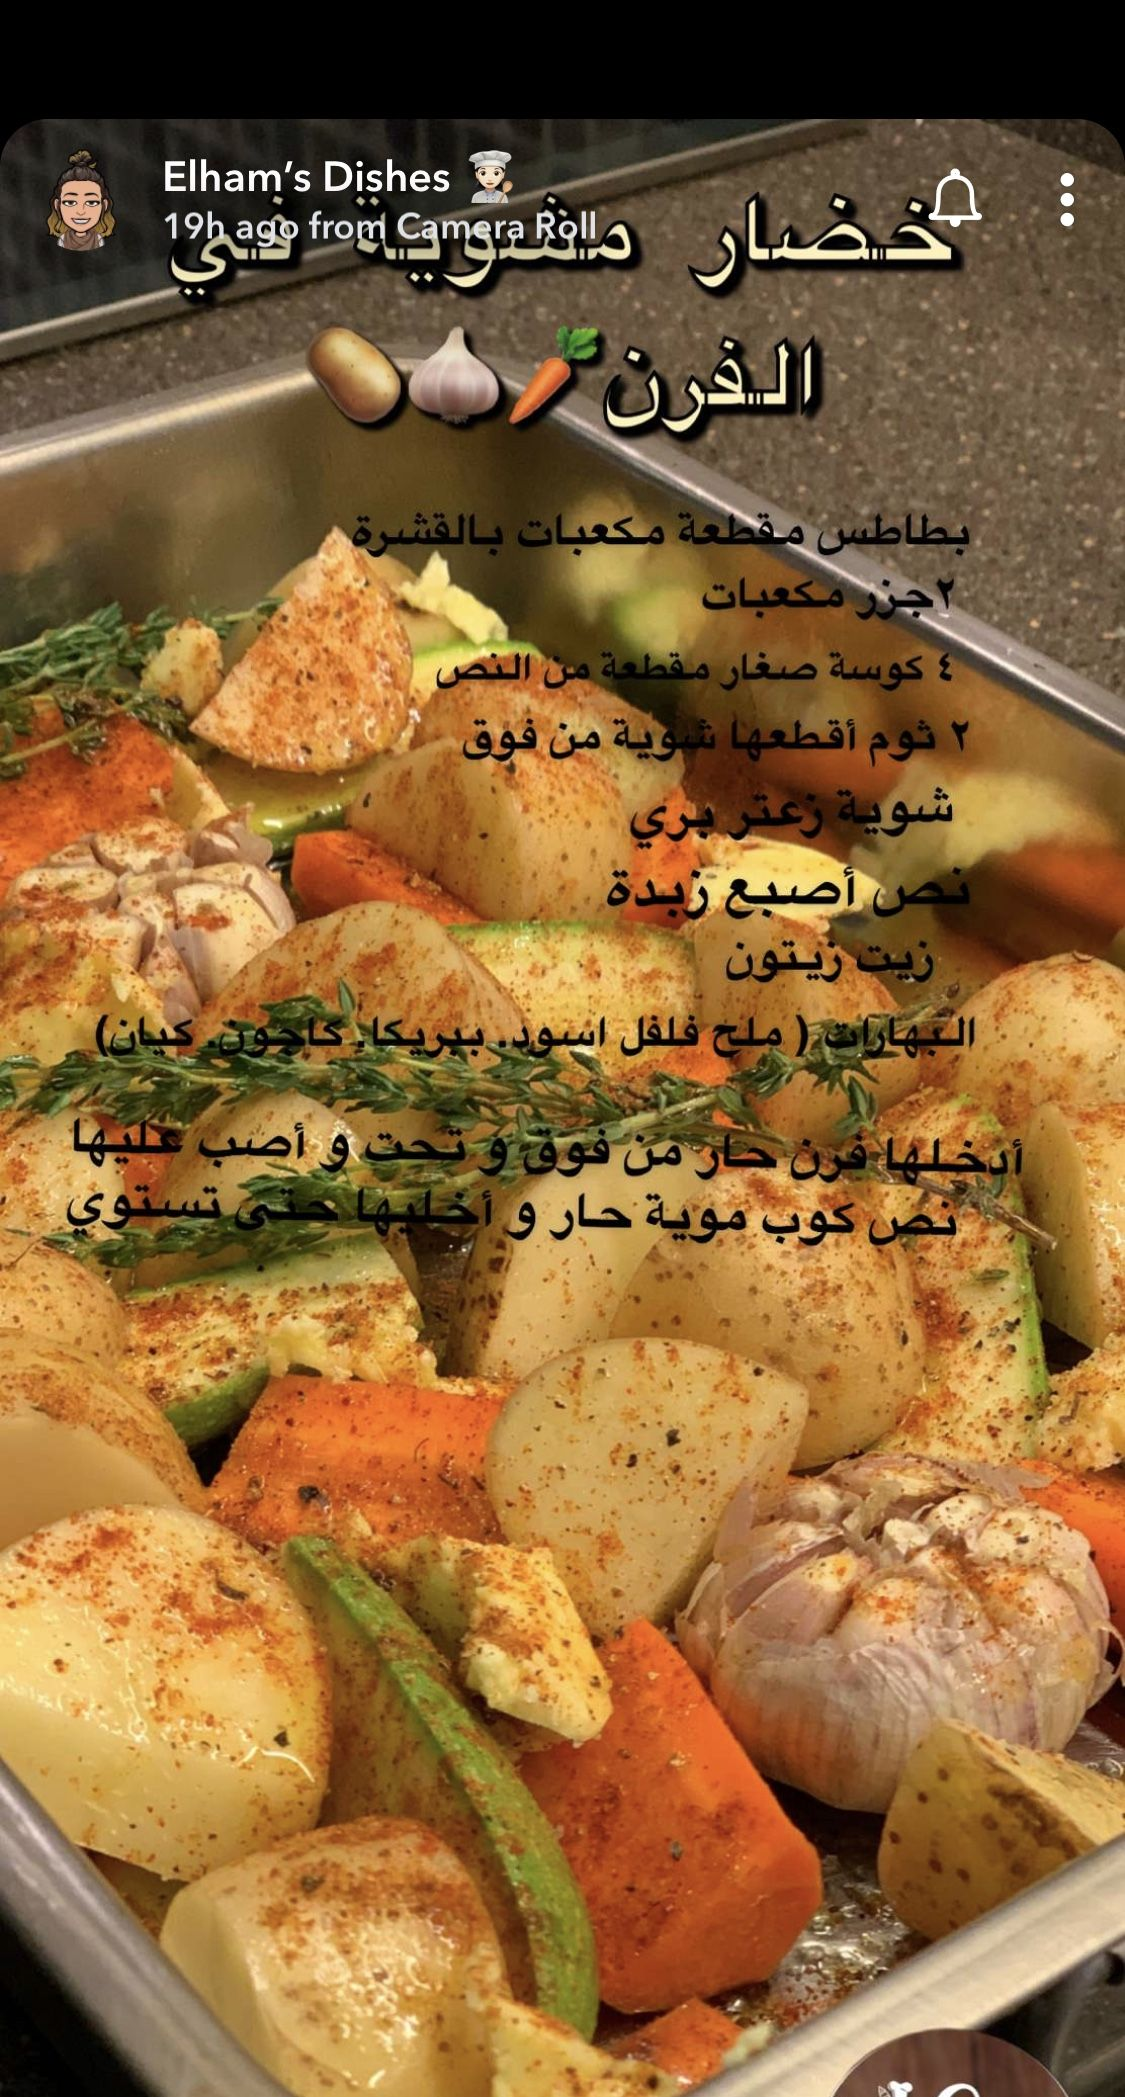 Pin By Fatima On Food In 2020 Food Hacks Recipes Cooking